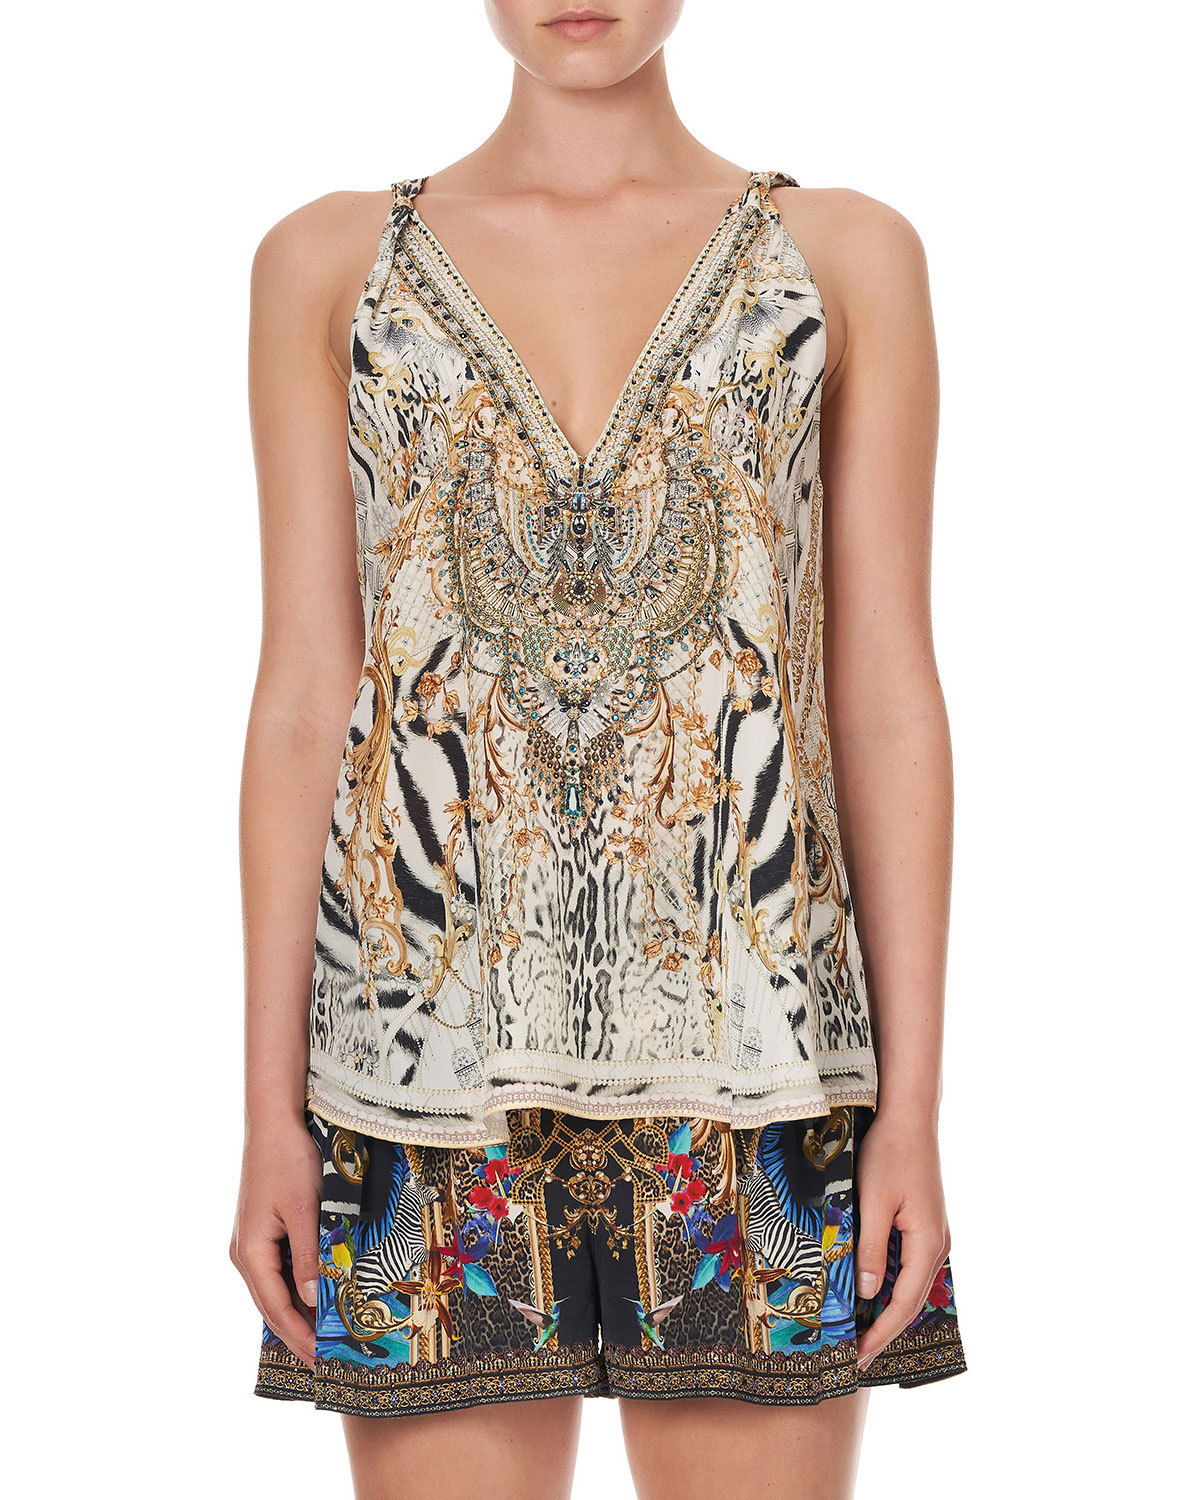 Printed Coverup Tank Top w/ Crystals